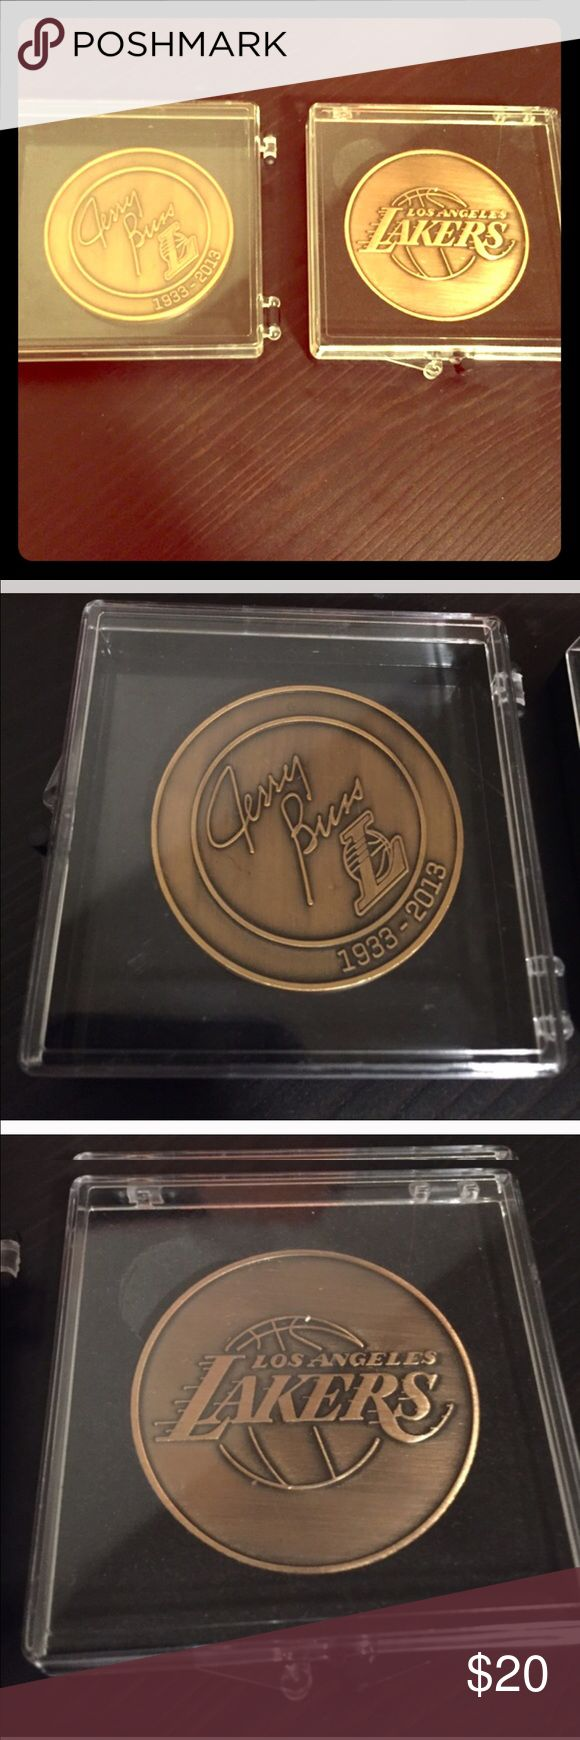 Lakers - Jerry Buss commemorative coin!!! Jerry buss coin was avail to all fans in 2016, as a collectors item commemorating the late Jerry Buss! Great collectors edition for any true laker fan!!! I had extra, so I'm selling this coin :) Other